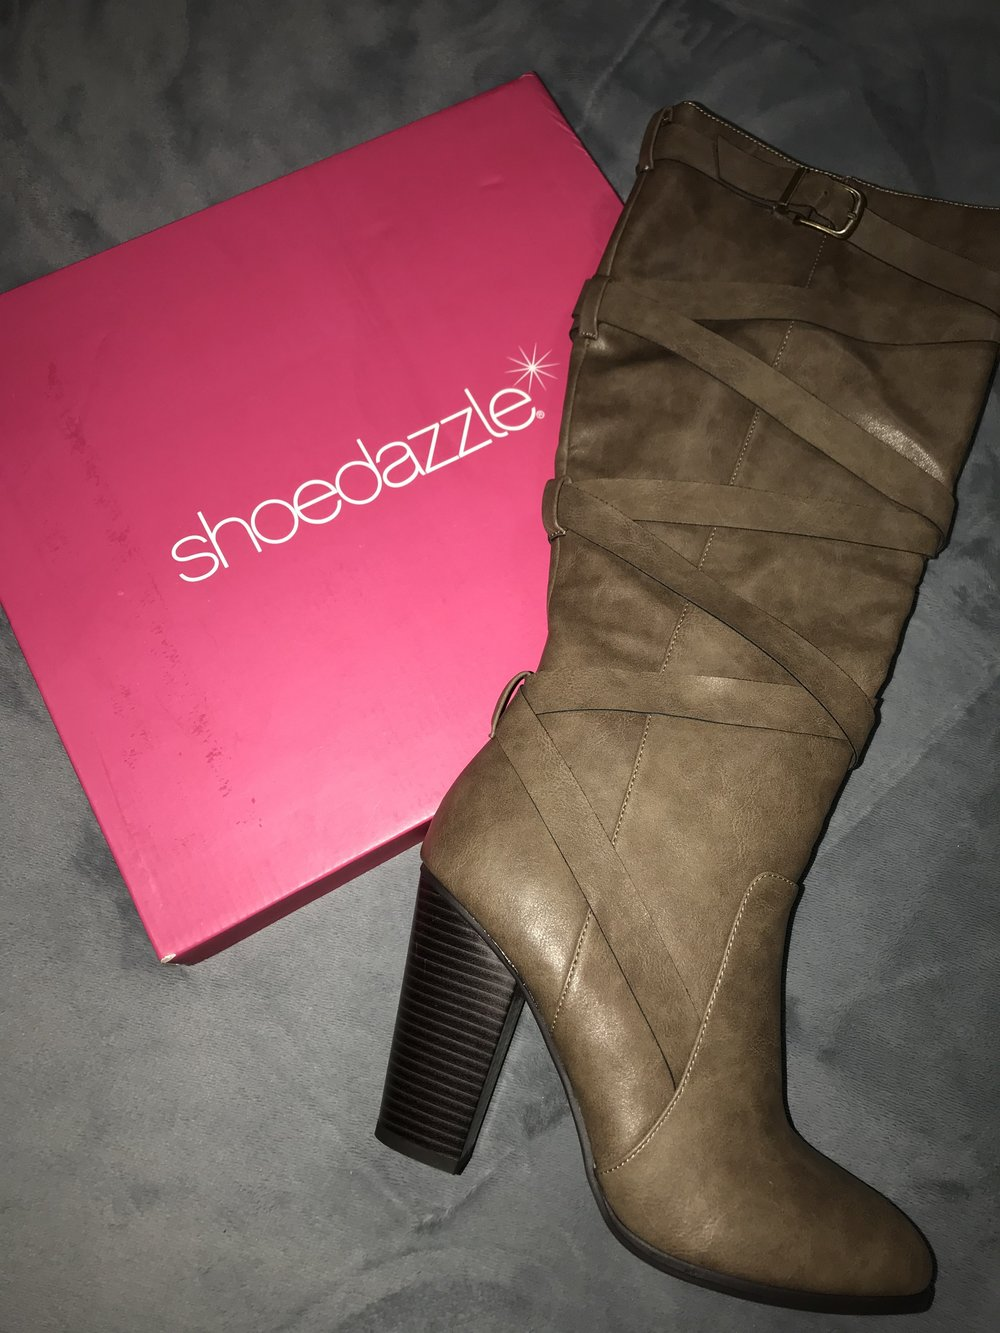 Been Loving Shoedazzle latetly. Glad I decided to give them a try. You can too. Hit the link above :-) -